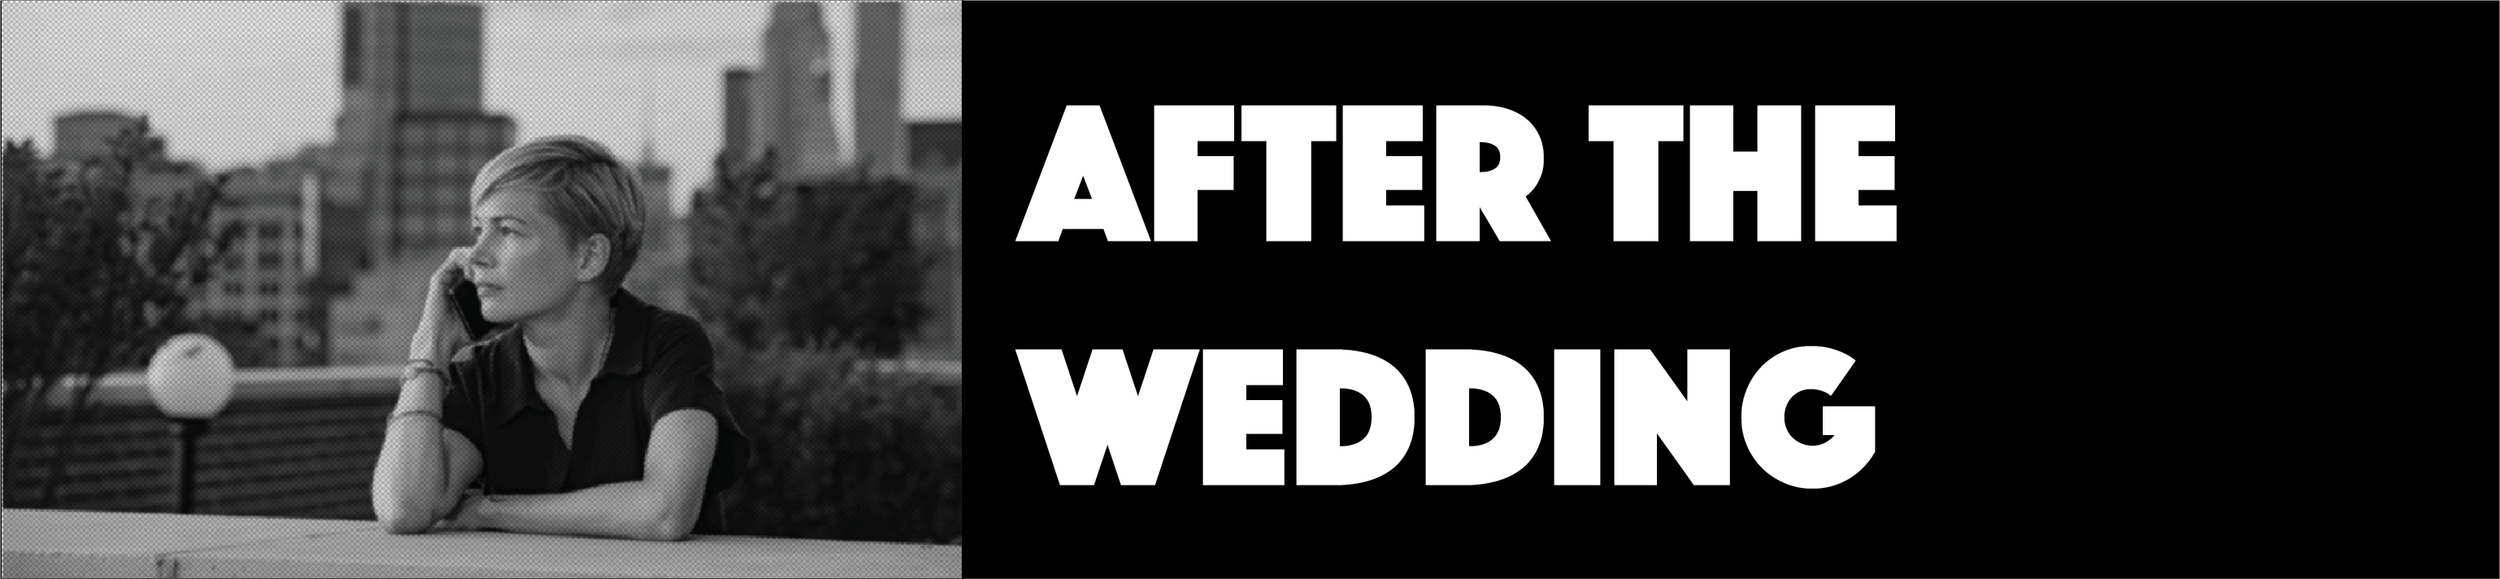 AFTER_THE_WEDDING.png